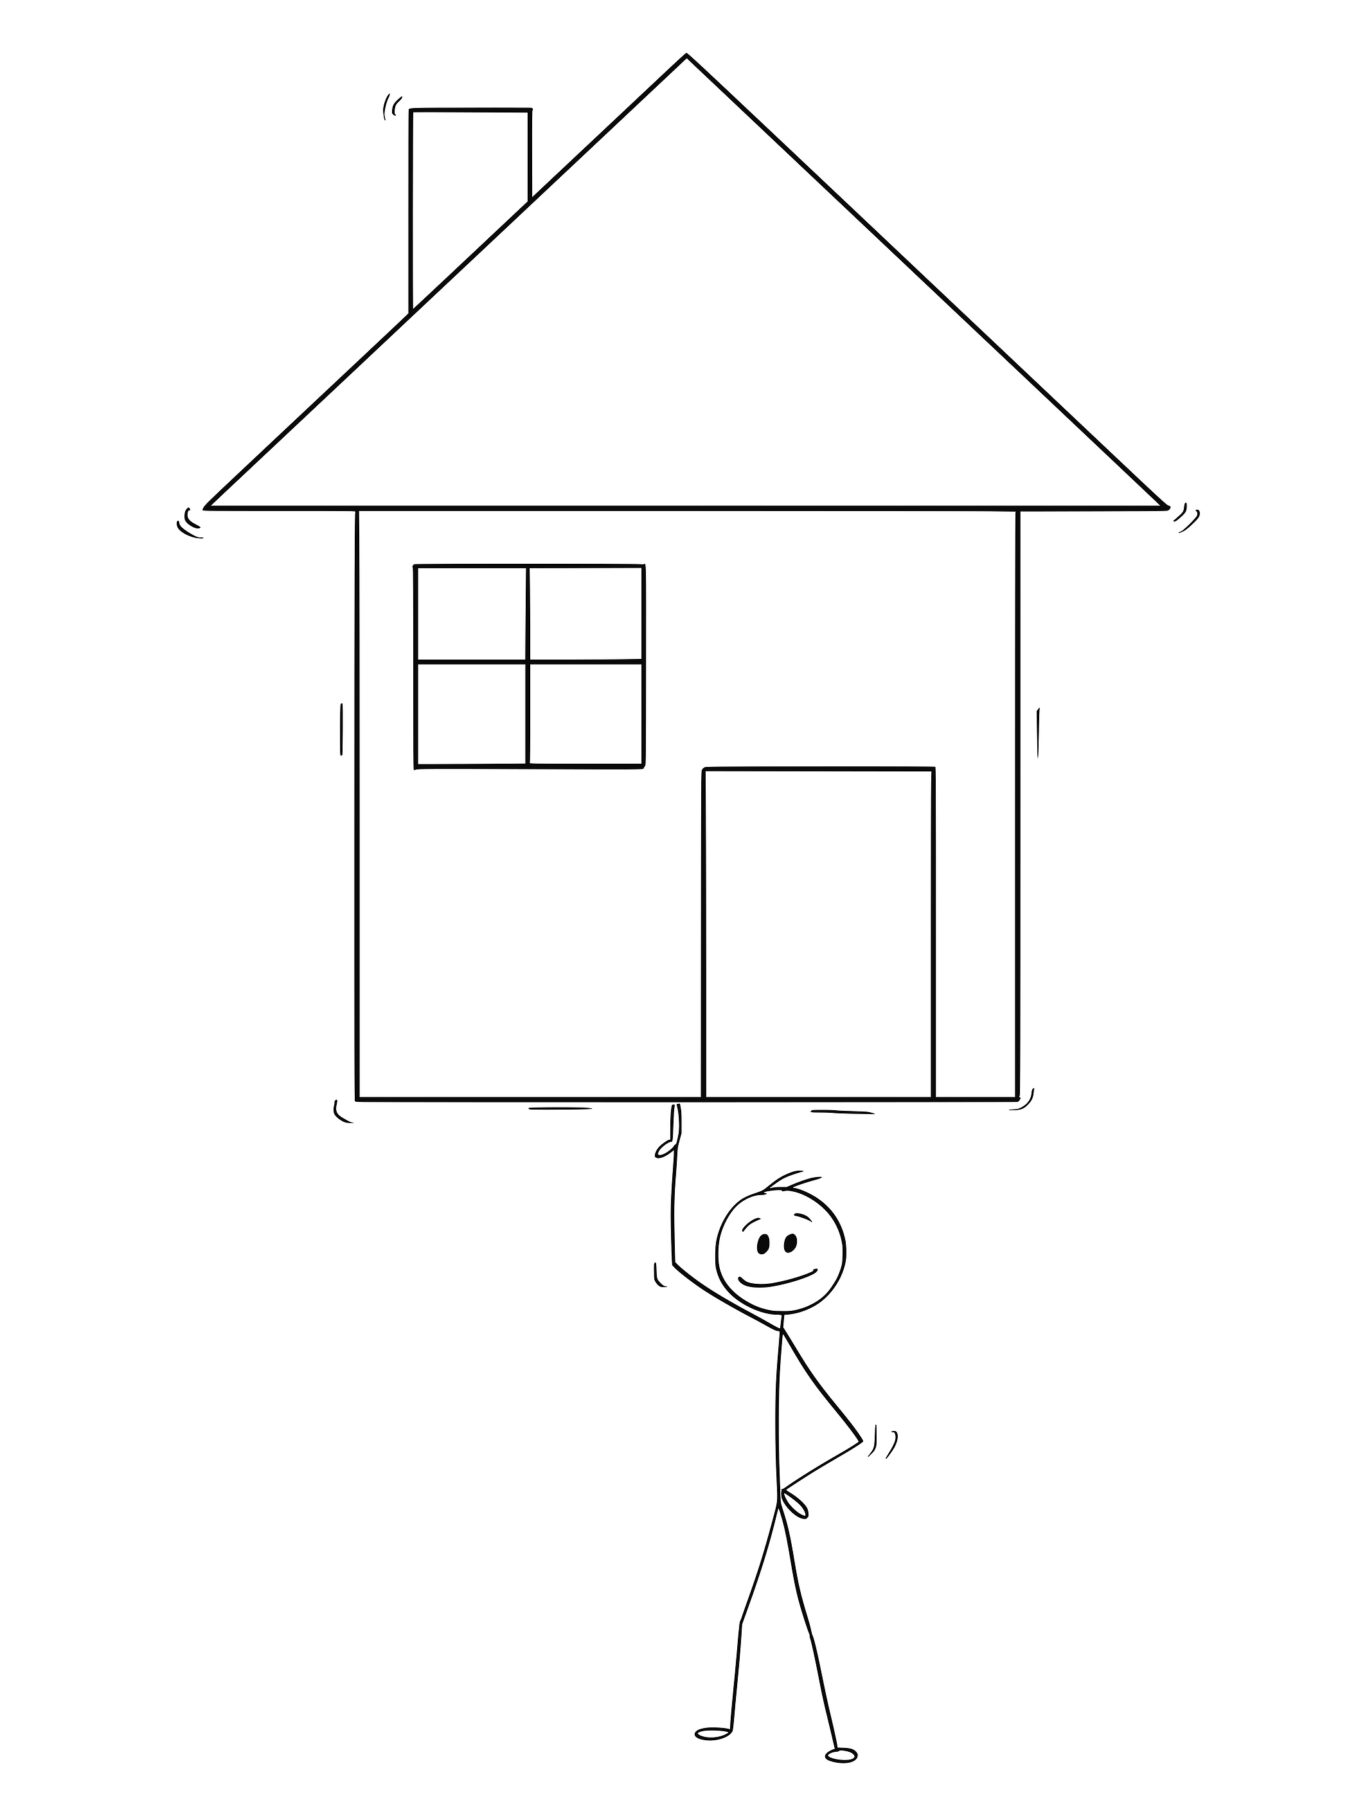 Cartoon stick man drawing conceptual illustration of businessman balancing family house on one finger. Business concept of easy property leasing, mortgage or real estate investment.